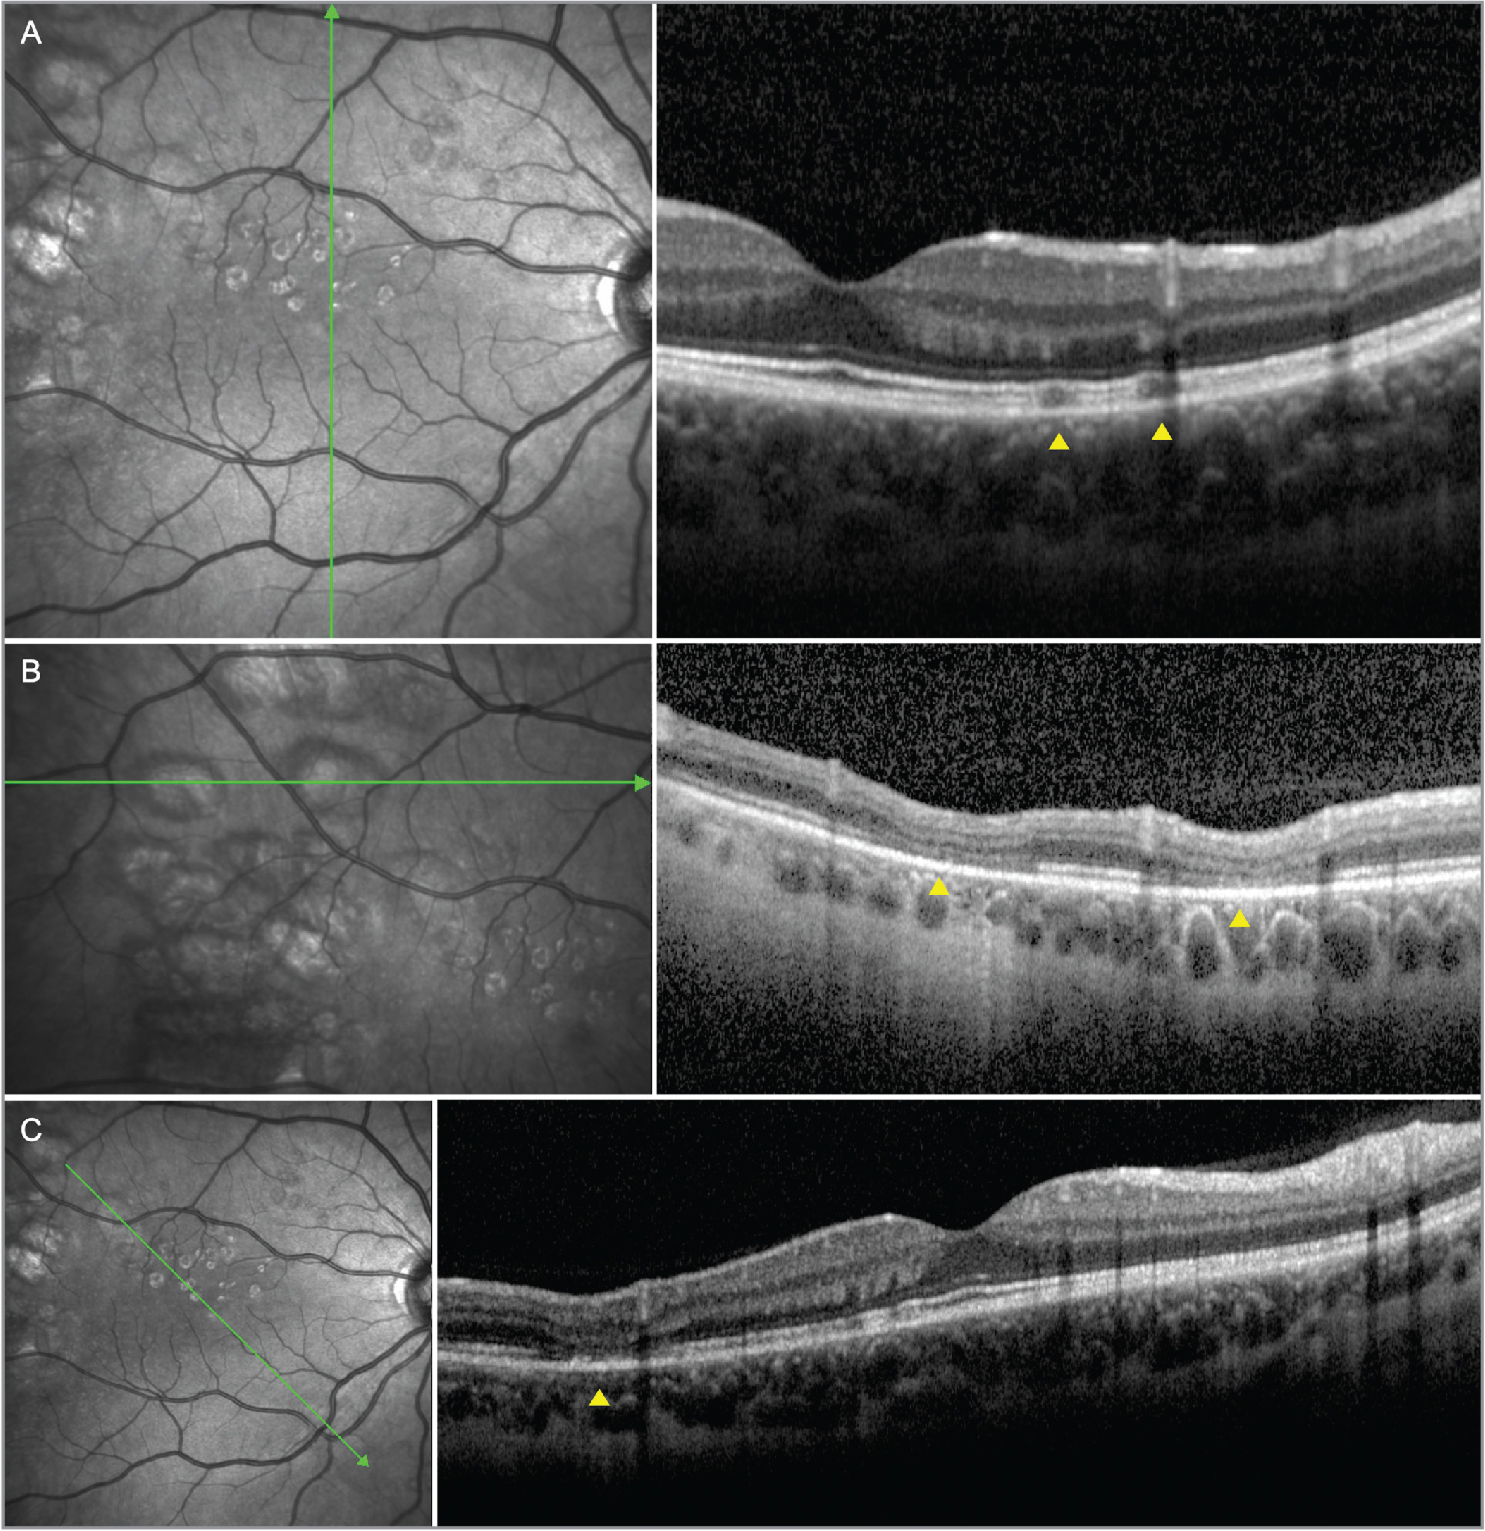 Spectral-domain optical coherence tomography in congenital grouped albinotic spots. Several scans over the smaller (A) and larger (B, C) albinotic spots show a preserved retinal pigment epithelium layer and atrophic changes in the outer retinal layers (yellow arrow heads).